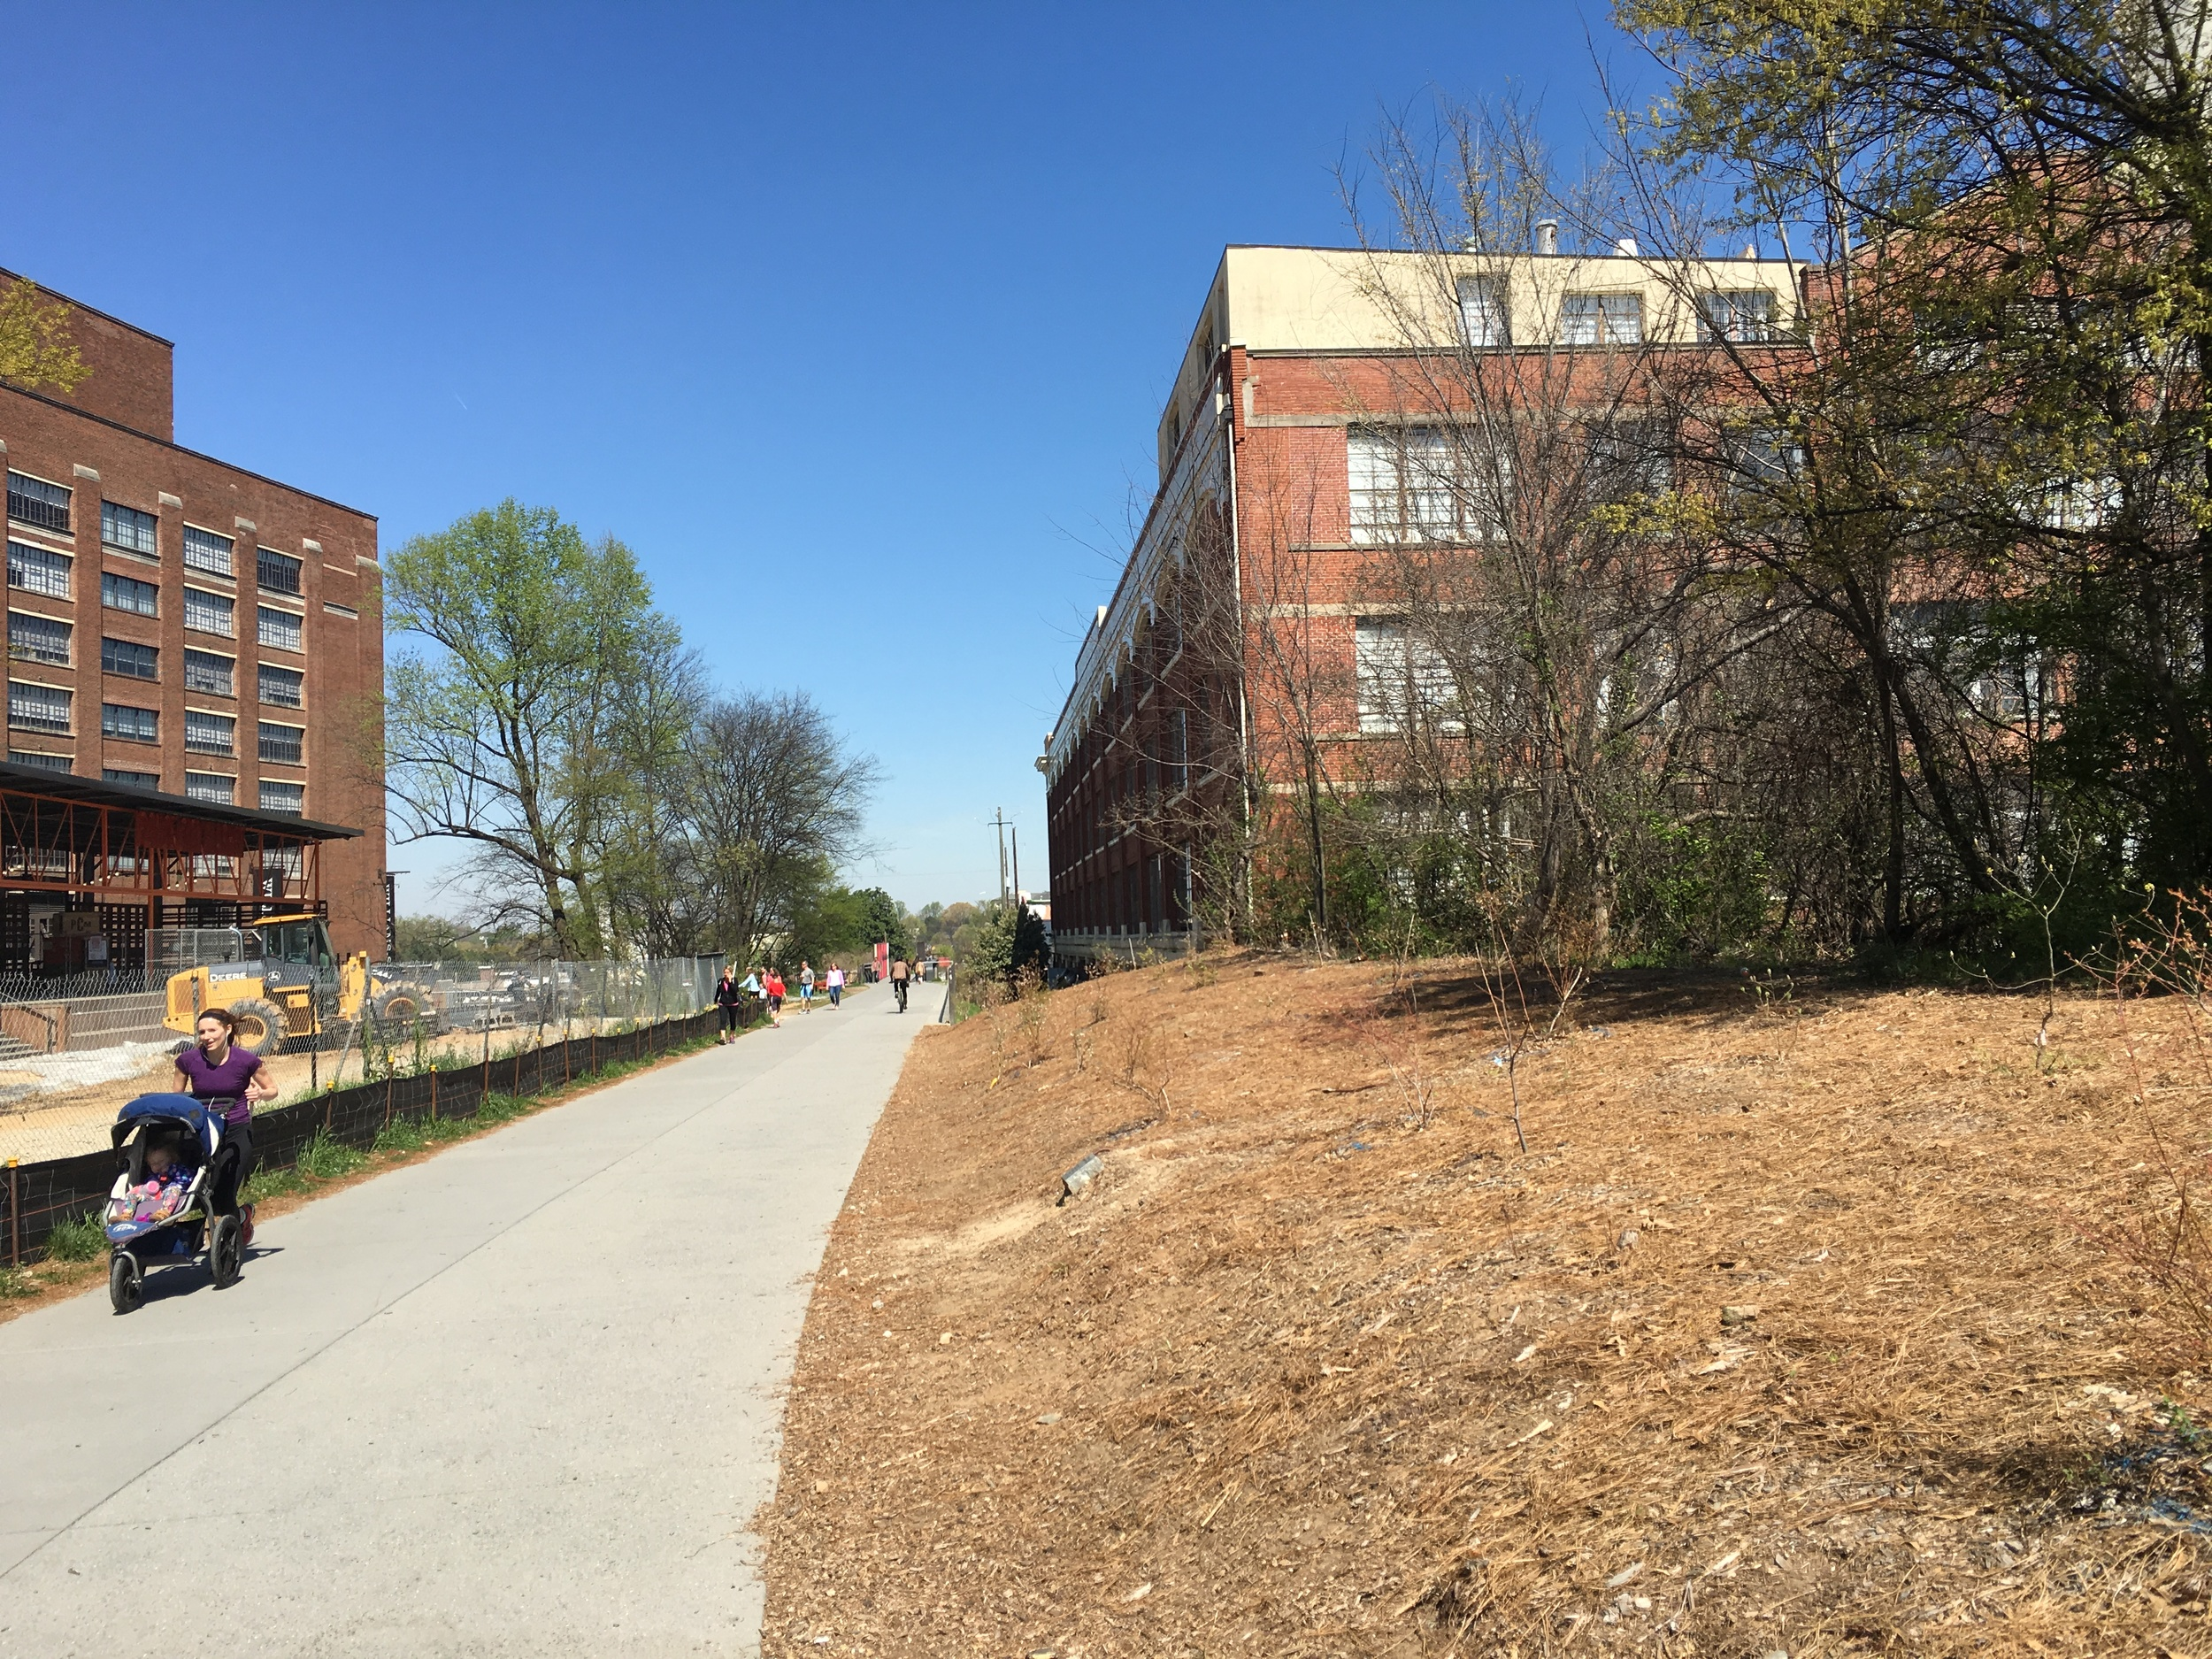 Atlanta Beltline Between Revamped Ford and Sears Buildings | Photo by Bill Boling